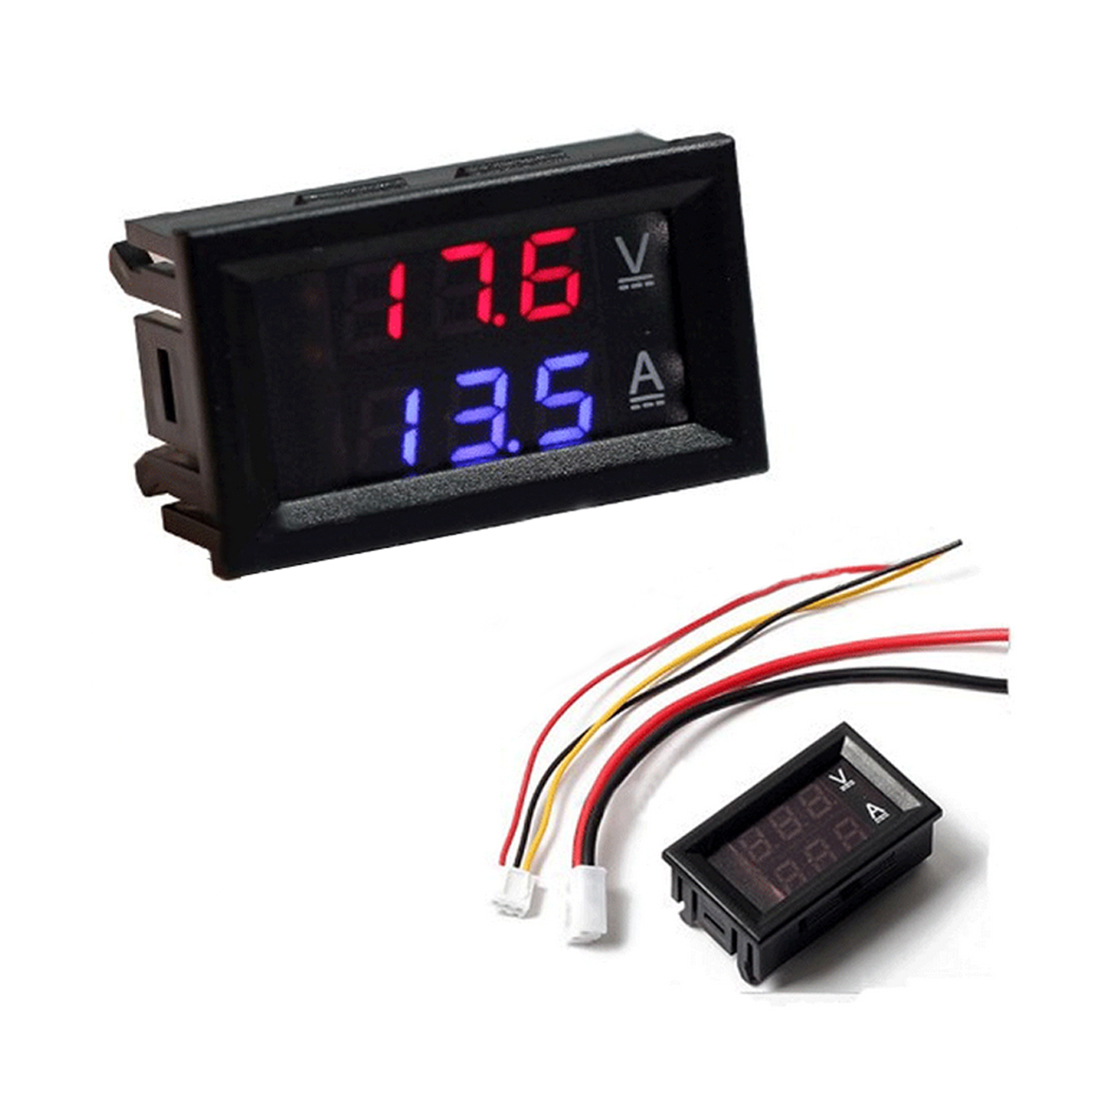 DIY DC100V 10A Voltmeter Ammeter Blue Red Dual Amp Volt Voltage Current Meter Gauge Tester Panel Digital LED Display for Car hot sale factory price pvc giant outdoor water inflatable slide bounce house bouncy slide